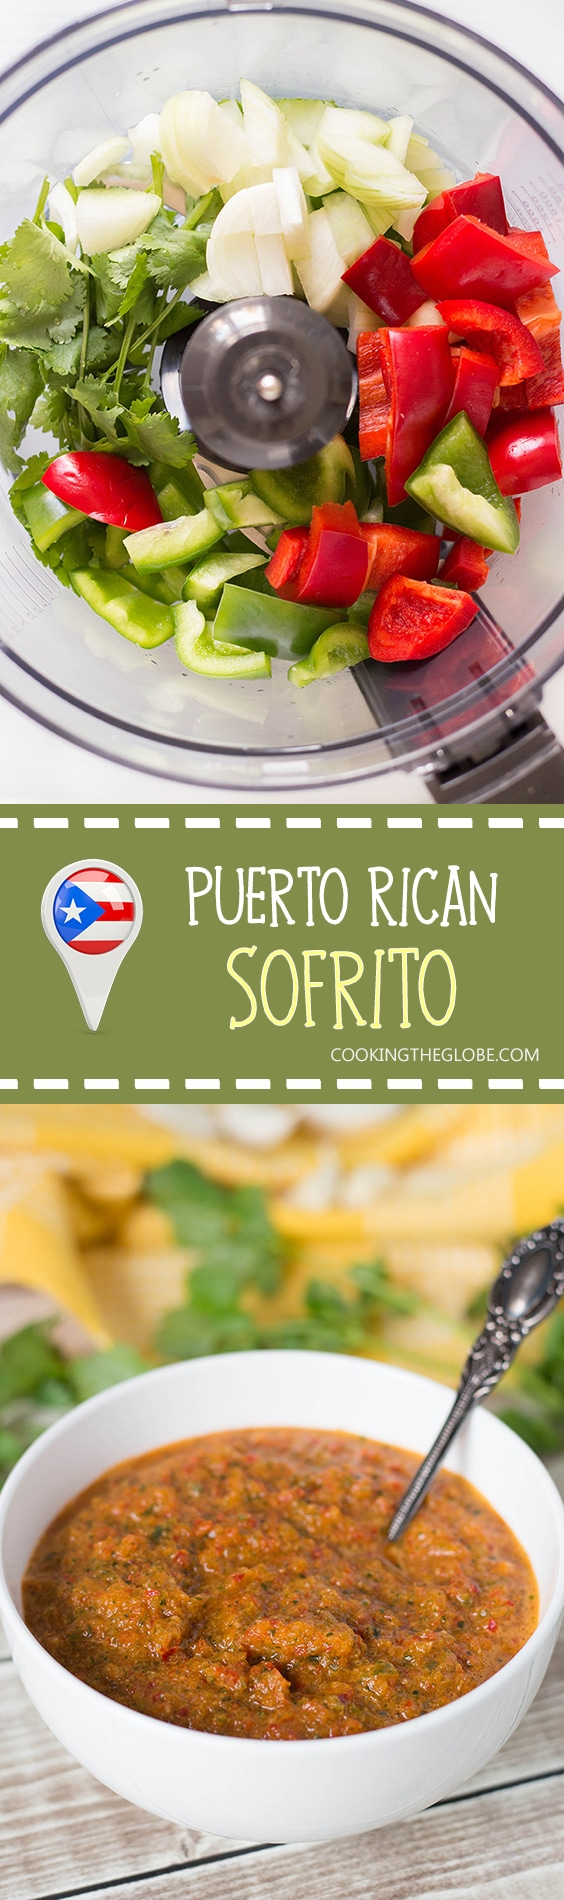 If you have never tried Puerto Rican Sofrito, you don't know what you are missing. This combination of peppers, cilantro, garlic, and onion can be used as a base in many Caribbean dishes! | cookingtheglobe.com